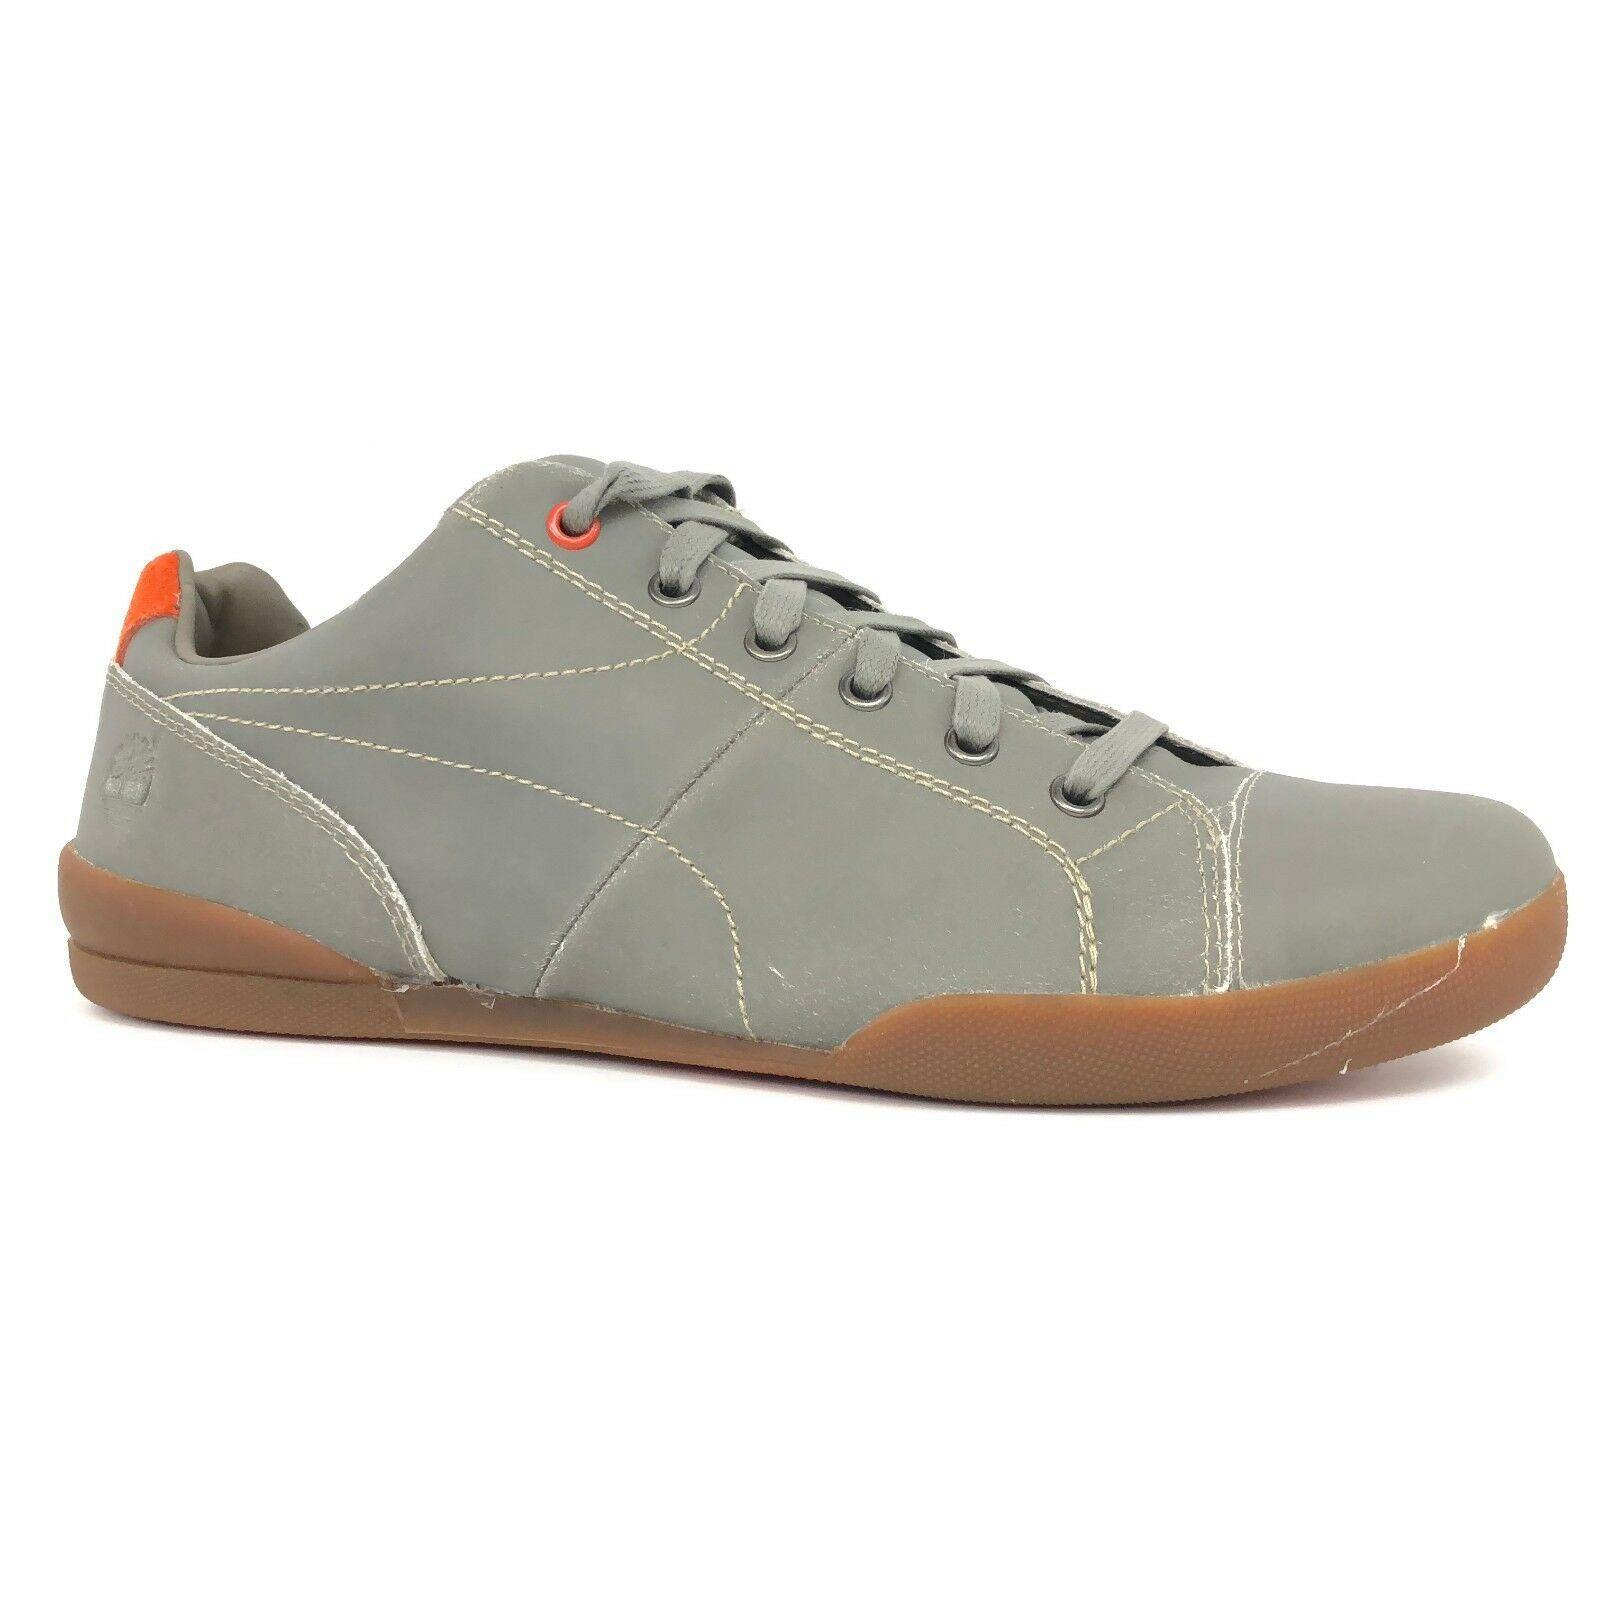 Timberland Men's Earthkeepers Splitcup Cap Toe Taupe Orange Oxford Shoes 5357A - $49.99